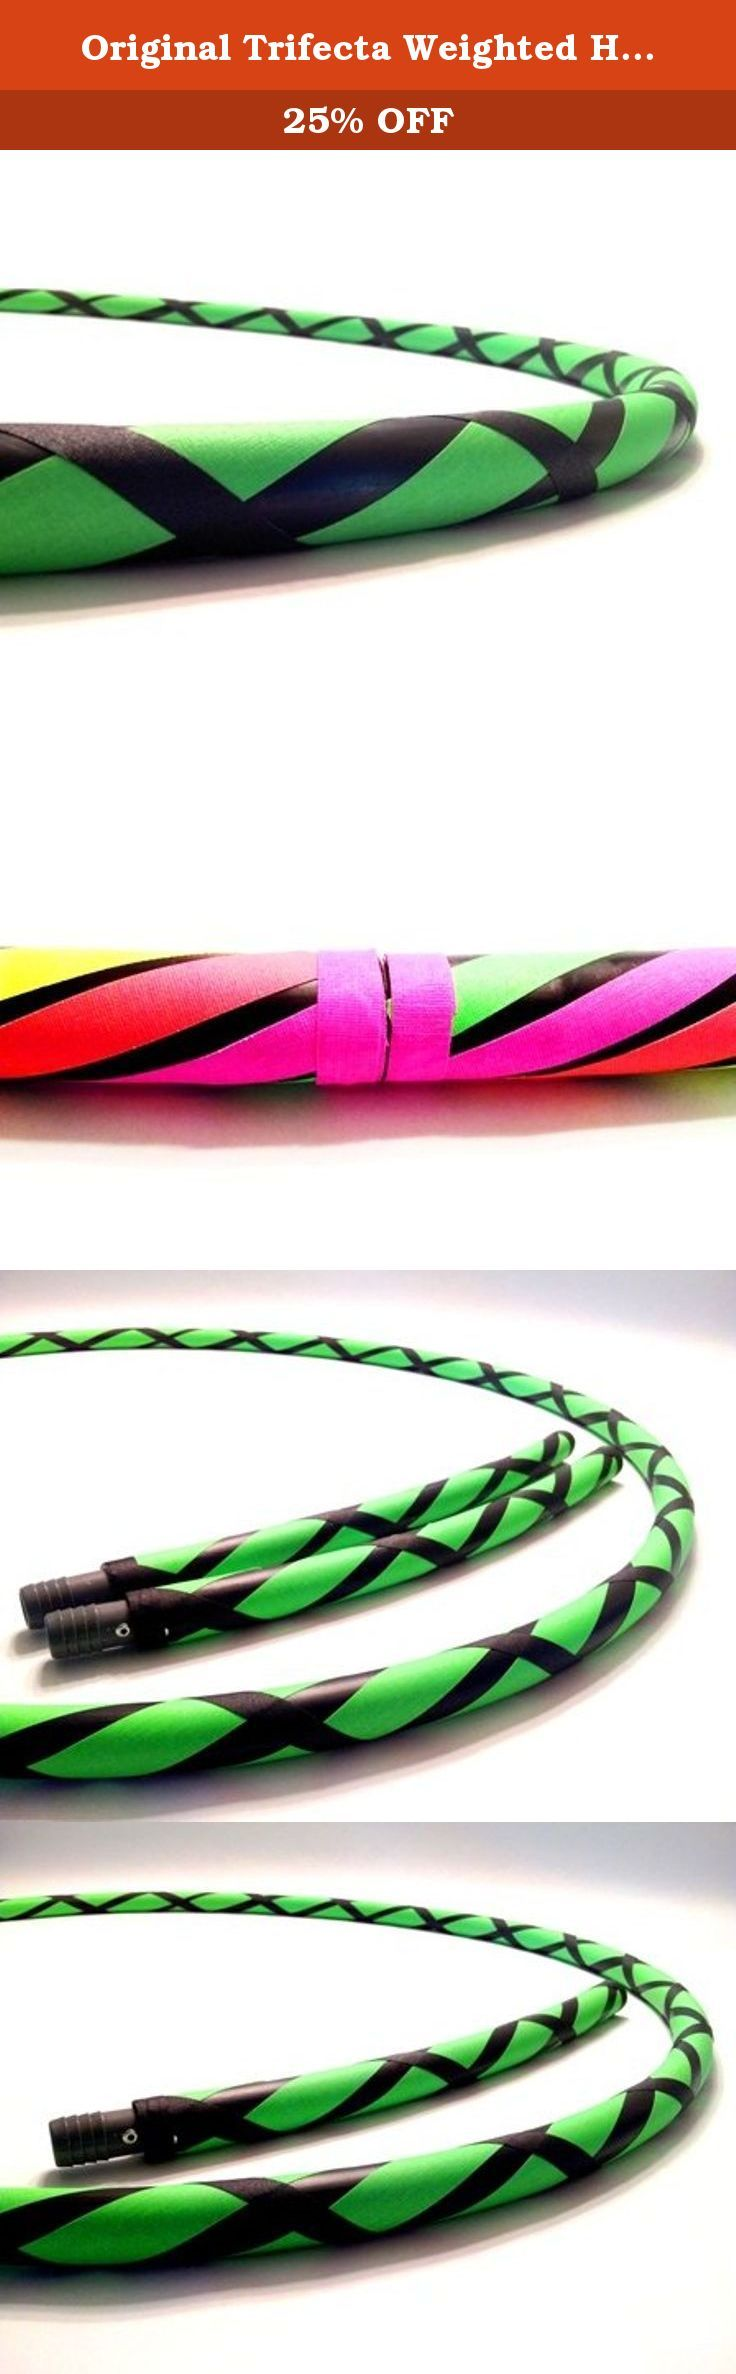 "Original Trifecta Weighted Hula Hoop (Lightning Sky Green)3 Hoops in 1 (40"" 1 Hula Hoop). DIRECT FROM THE MANUFACTURER. Featuring the original manufacturer of the ""TRIFECTA"" the newest innovation in hula hooping. Paradise Hoops is formally the manufacturer for about 90% of Hoopnotica's handmade hula hoops. We have the BEST QUALITY BEST PRICE. This ""TRIFECTA"" hula hoop was created by Janou Lightning former team leader of Hoopnotica. She took her expertise in the hooping industry and made a..."